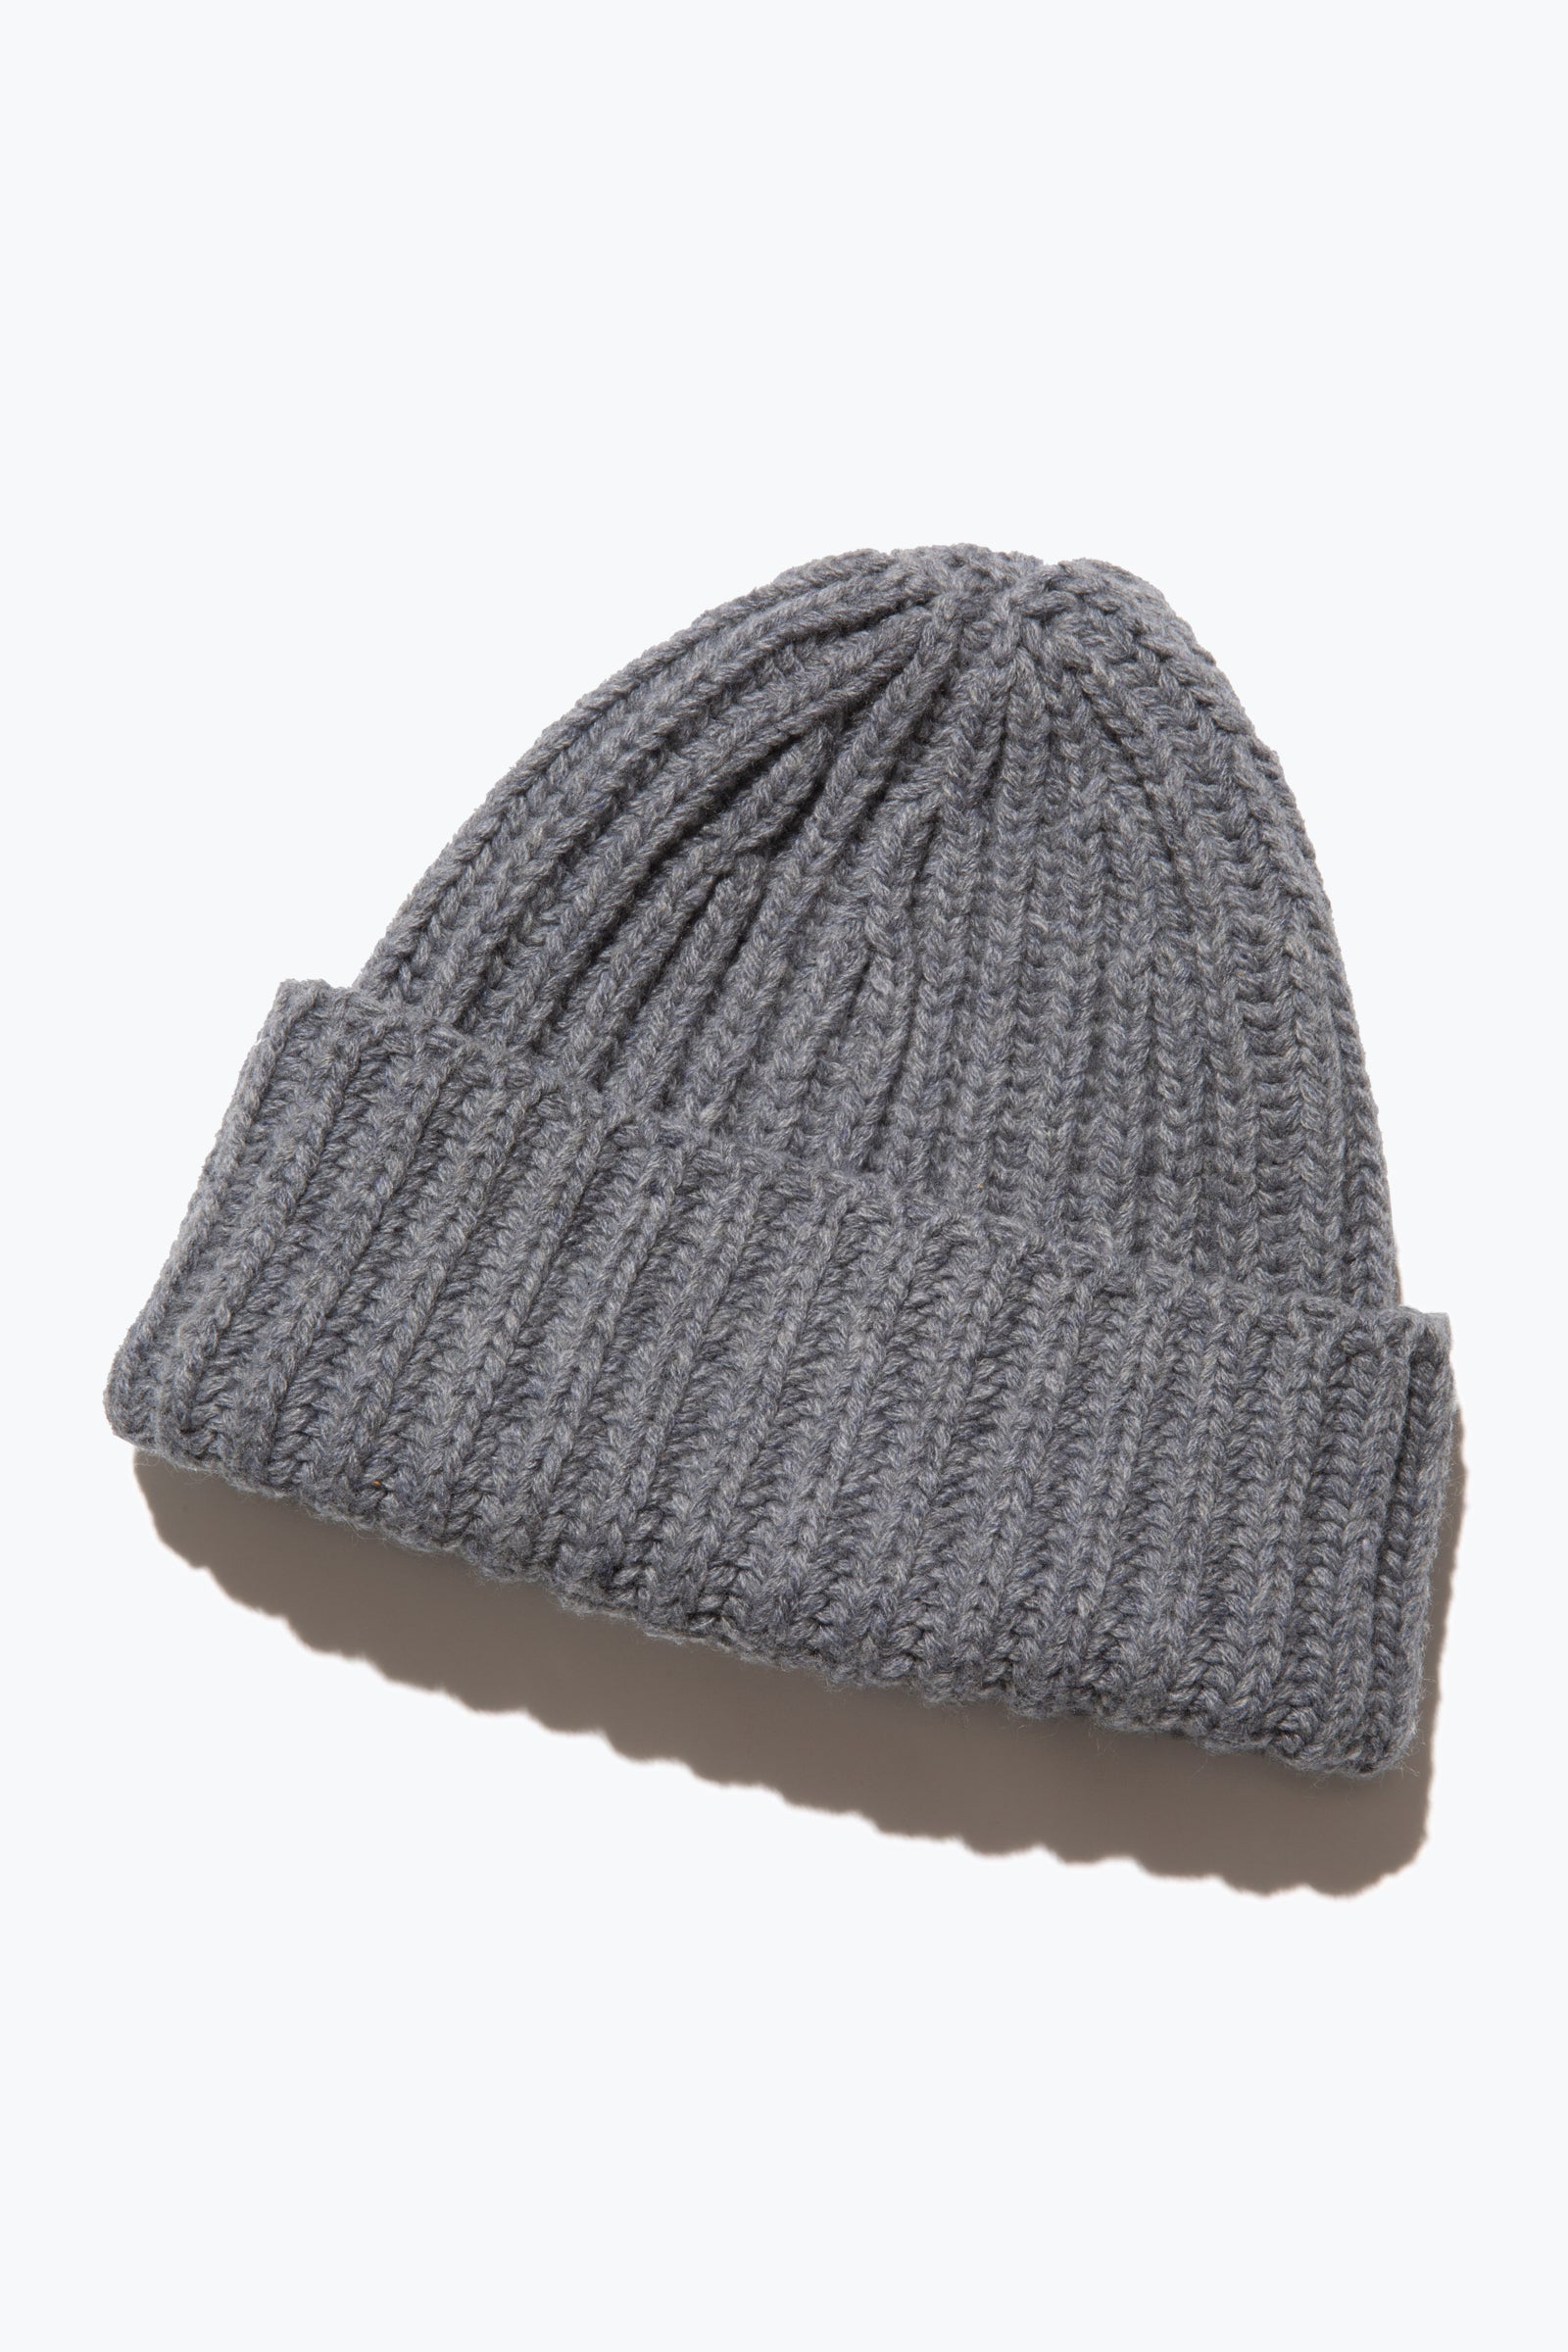 Sweaters - Watch Cap (Steel Grey)